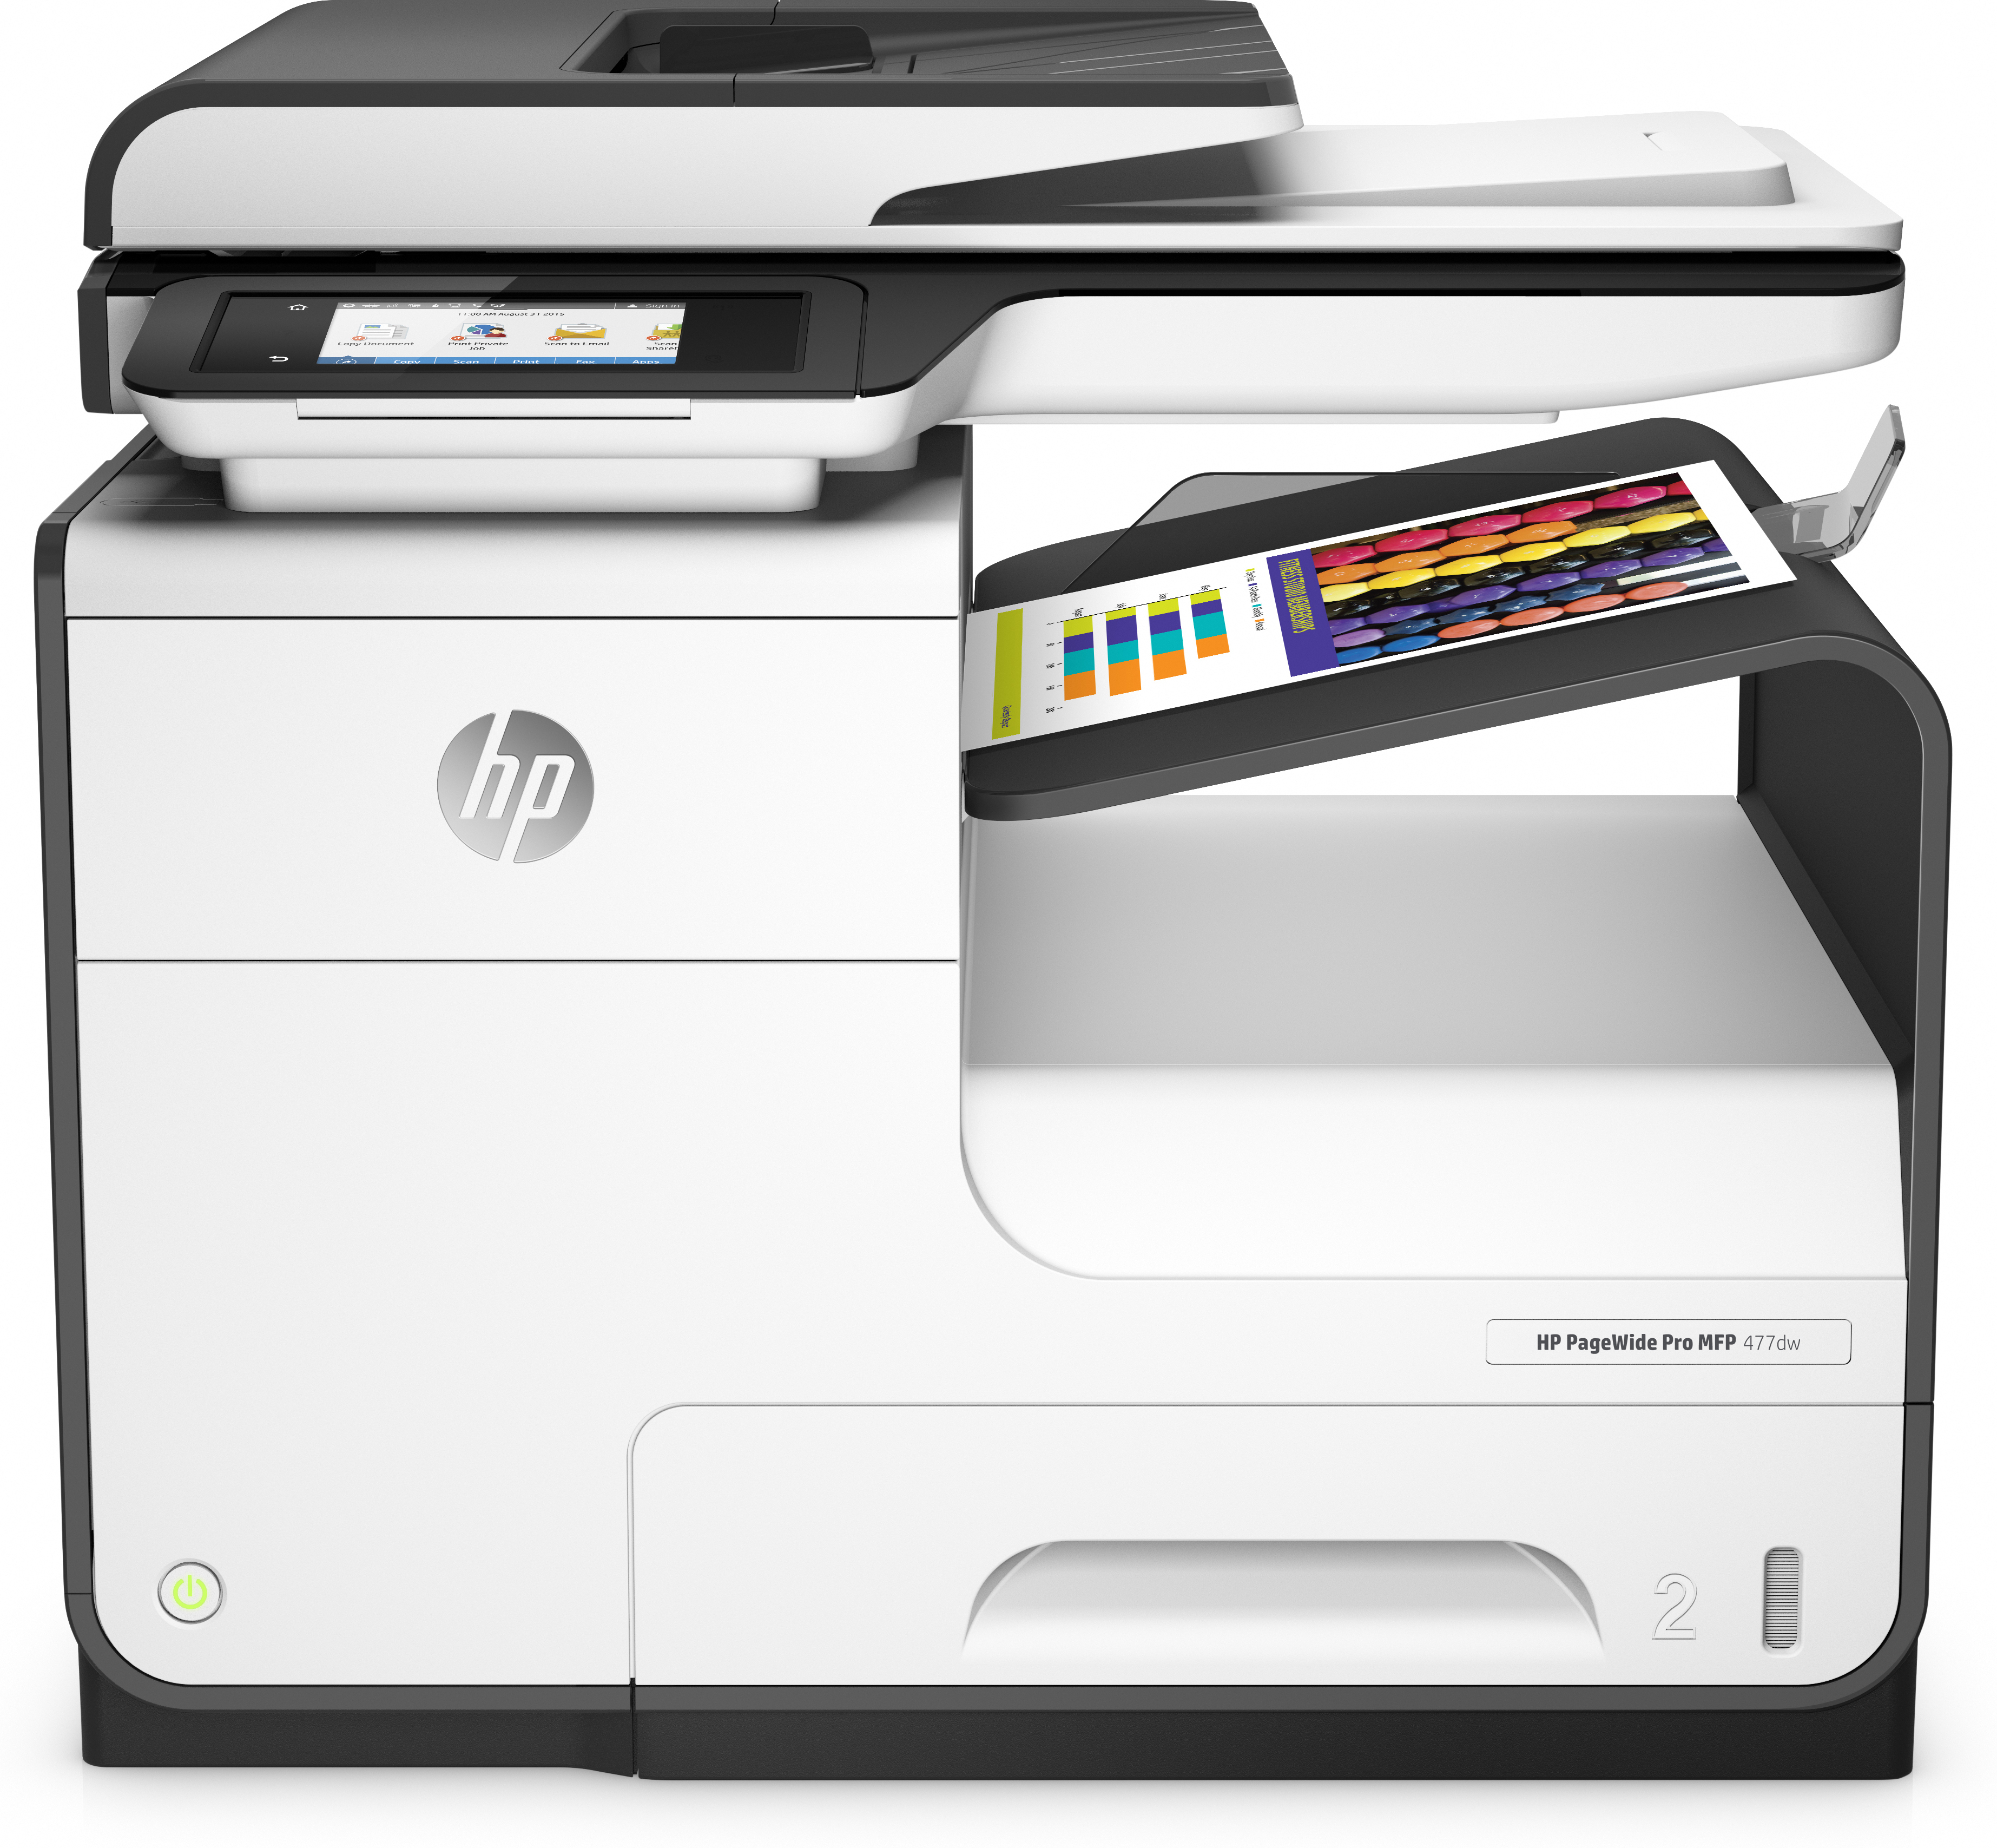 HP PageWide Pro 477dw, Tinte, MFP, A4